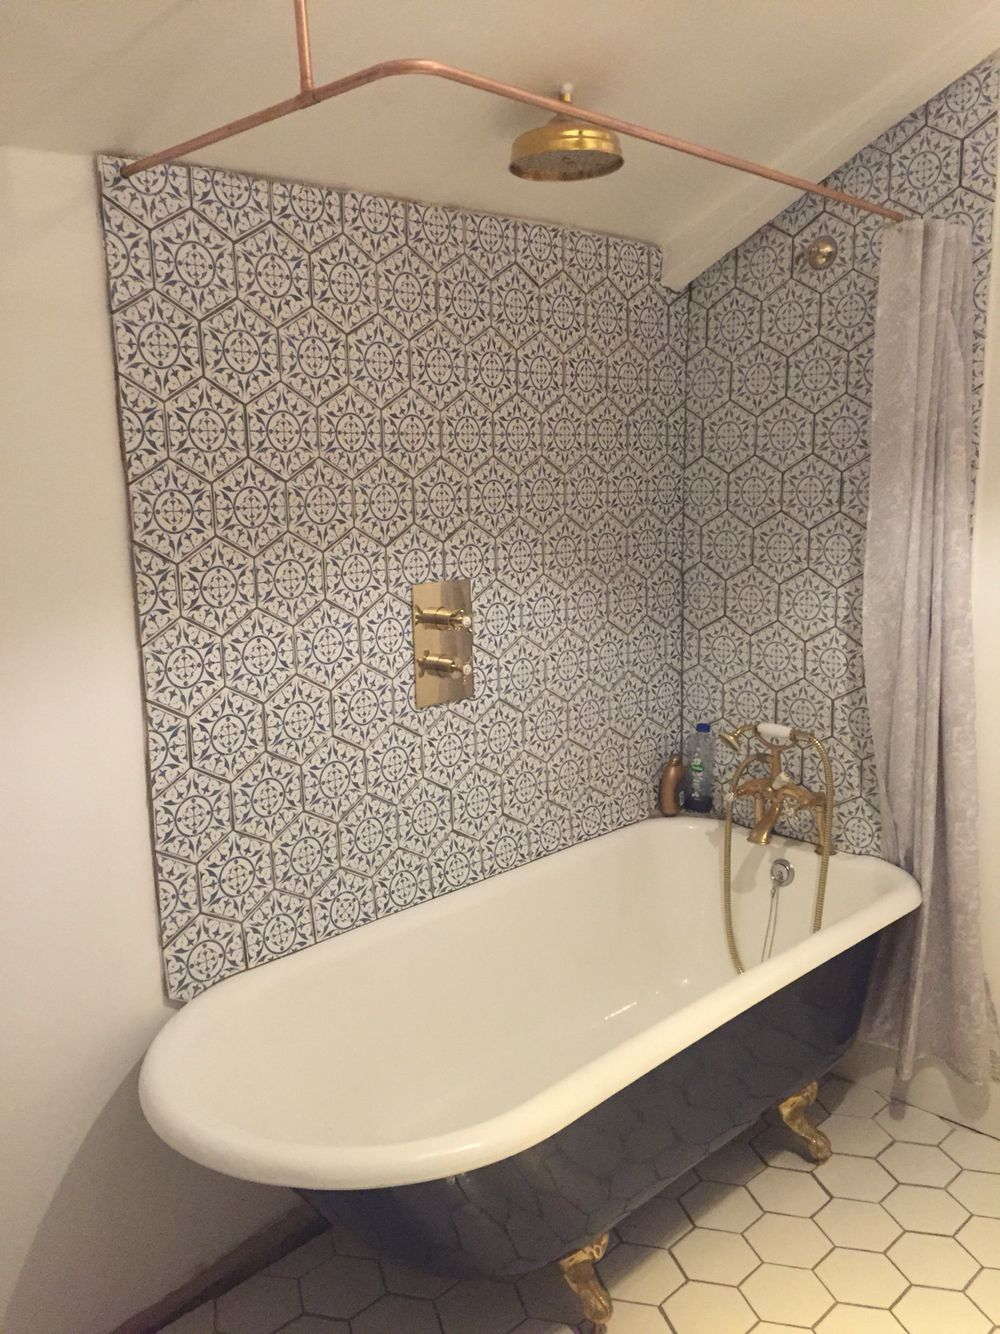 Cast Iron Bath With Copper Shower Curtain Rail Hexagon Tiles In